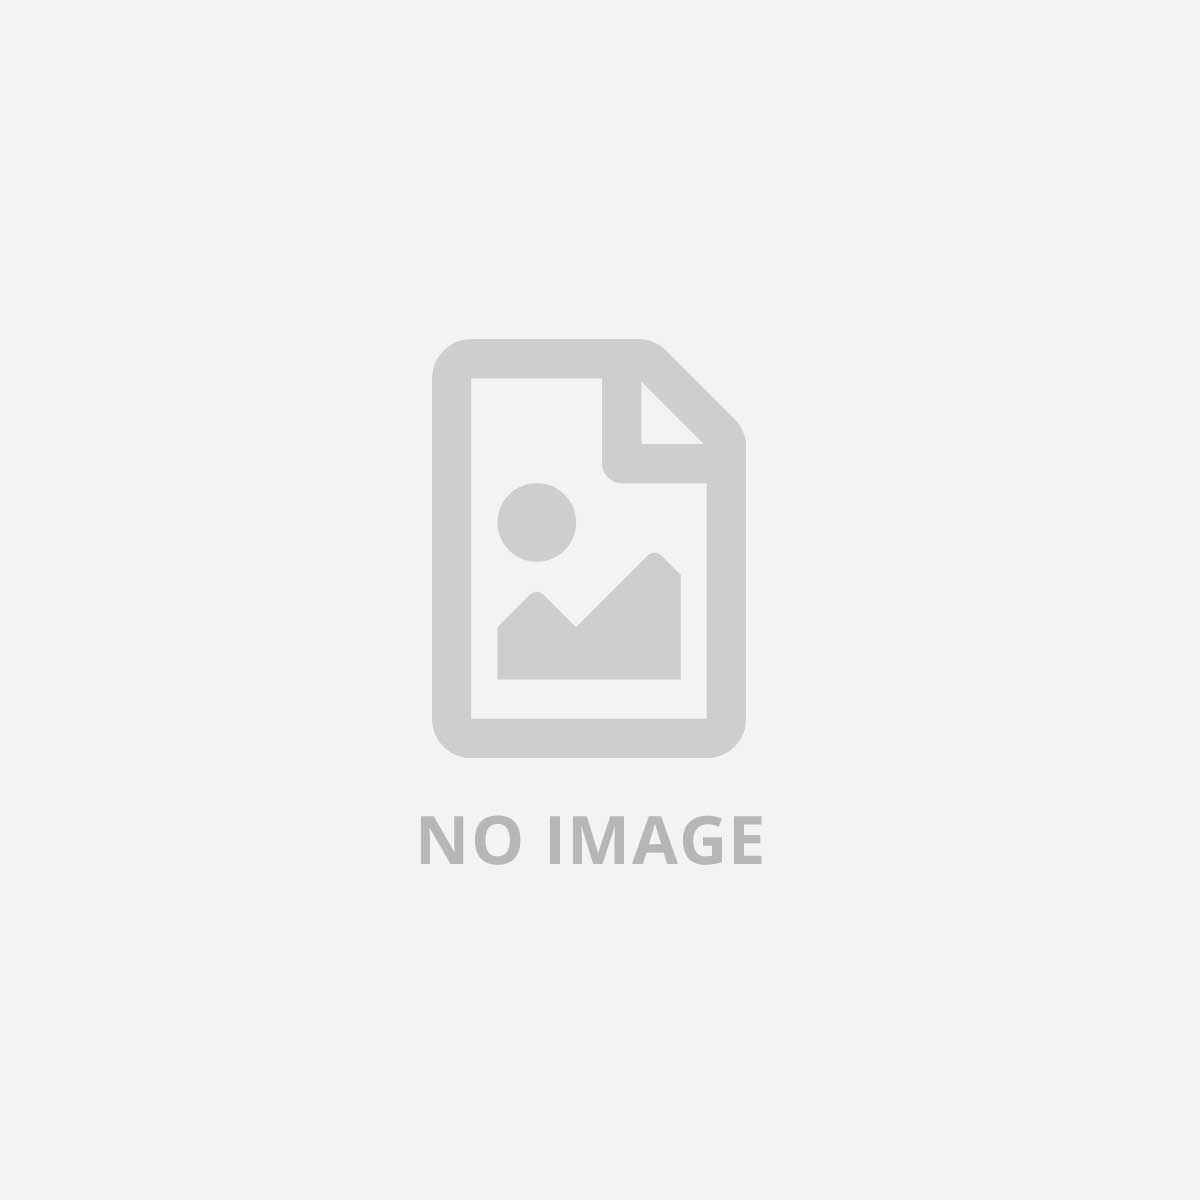 MAXELL DVD+R  4.7GB  16X  JEWELL C. CF.5 )